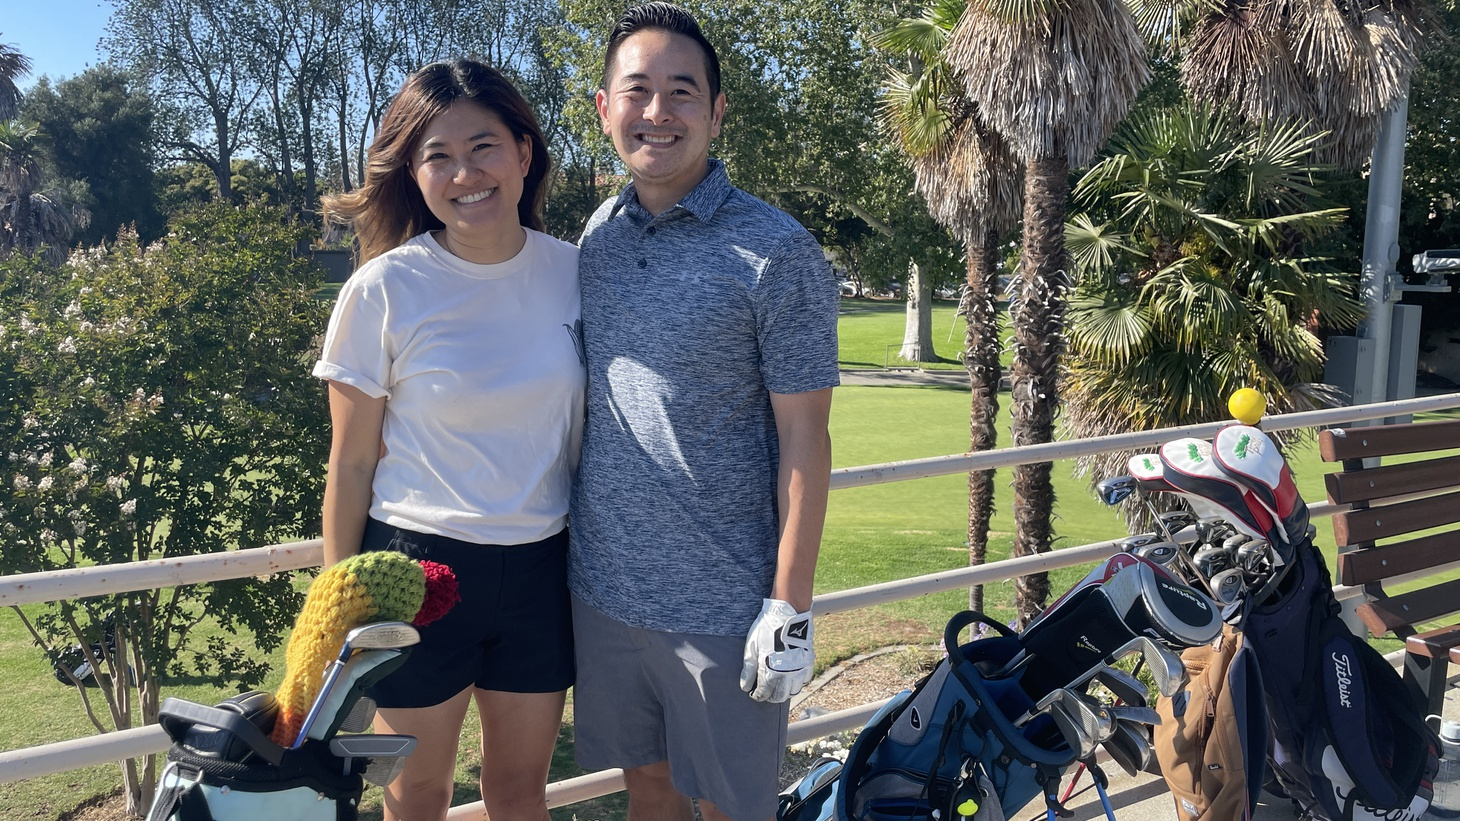 Jessica Youn and her husband, Scott Iseri, at the Rancho Park Golf Course driving range.